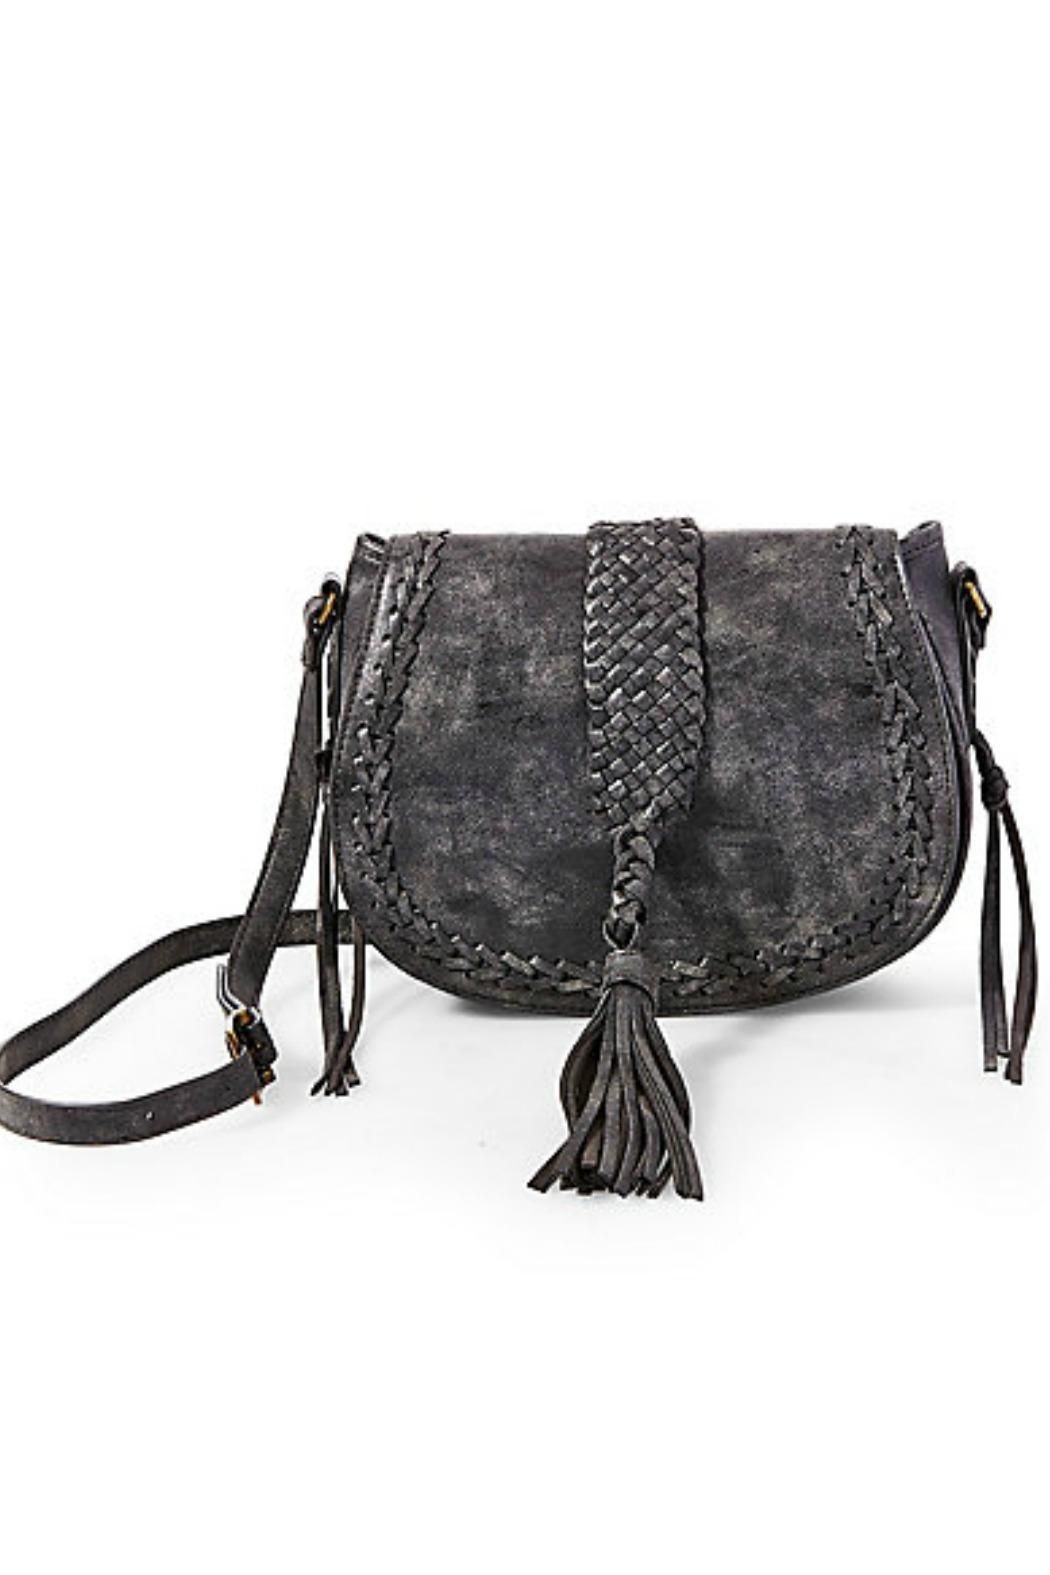 b386409f4c58 Steven by Steve Madden York Crossbody Bag from Virginia by Misguided ...